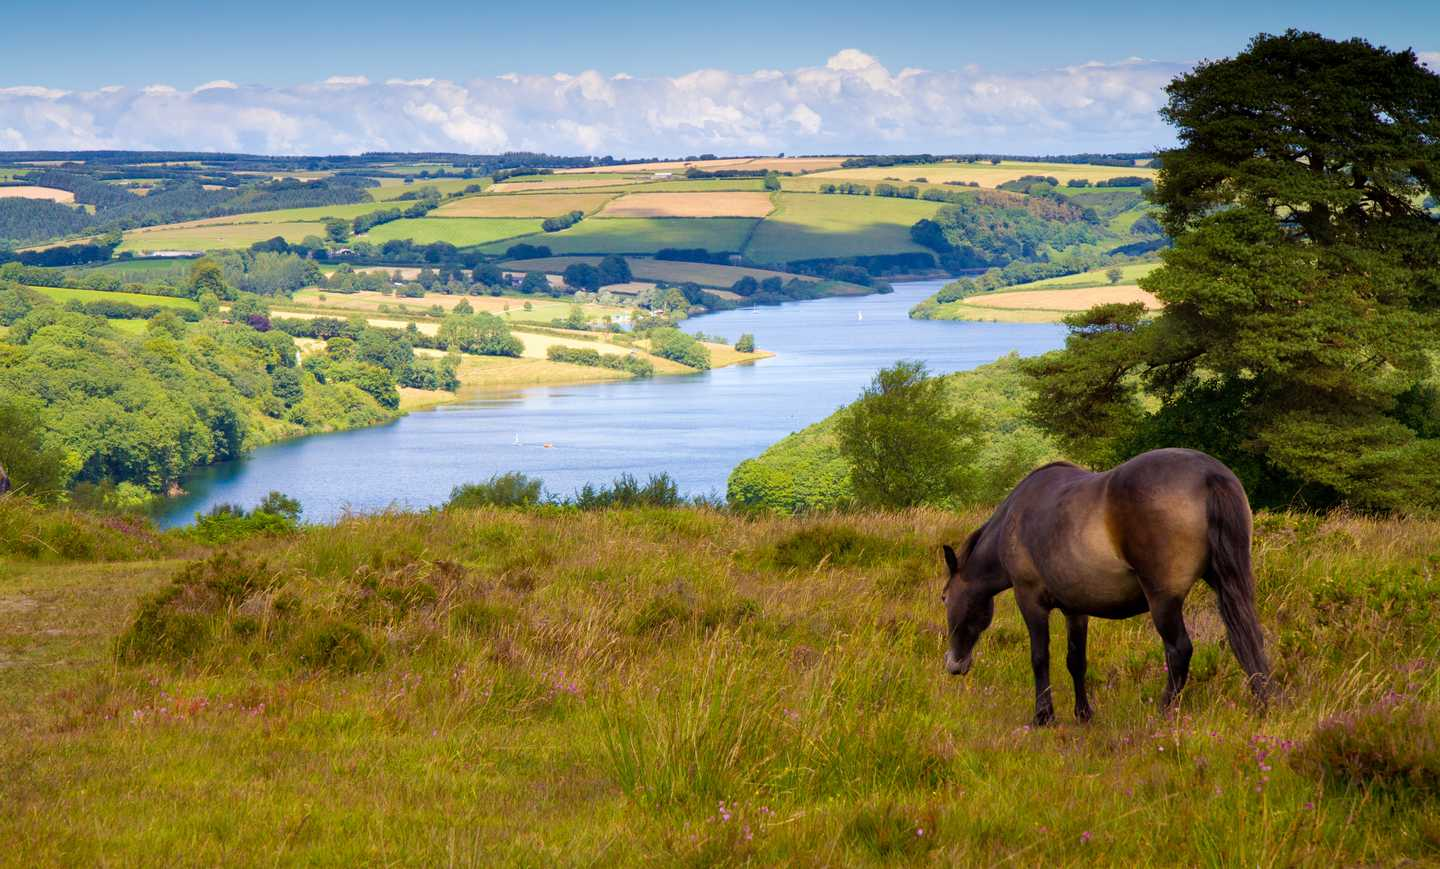 A horse grazing in the field of Exmoor National Park